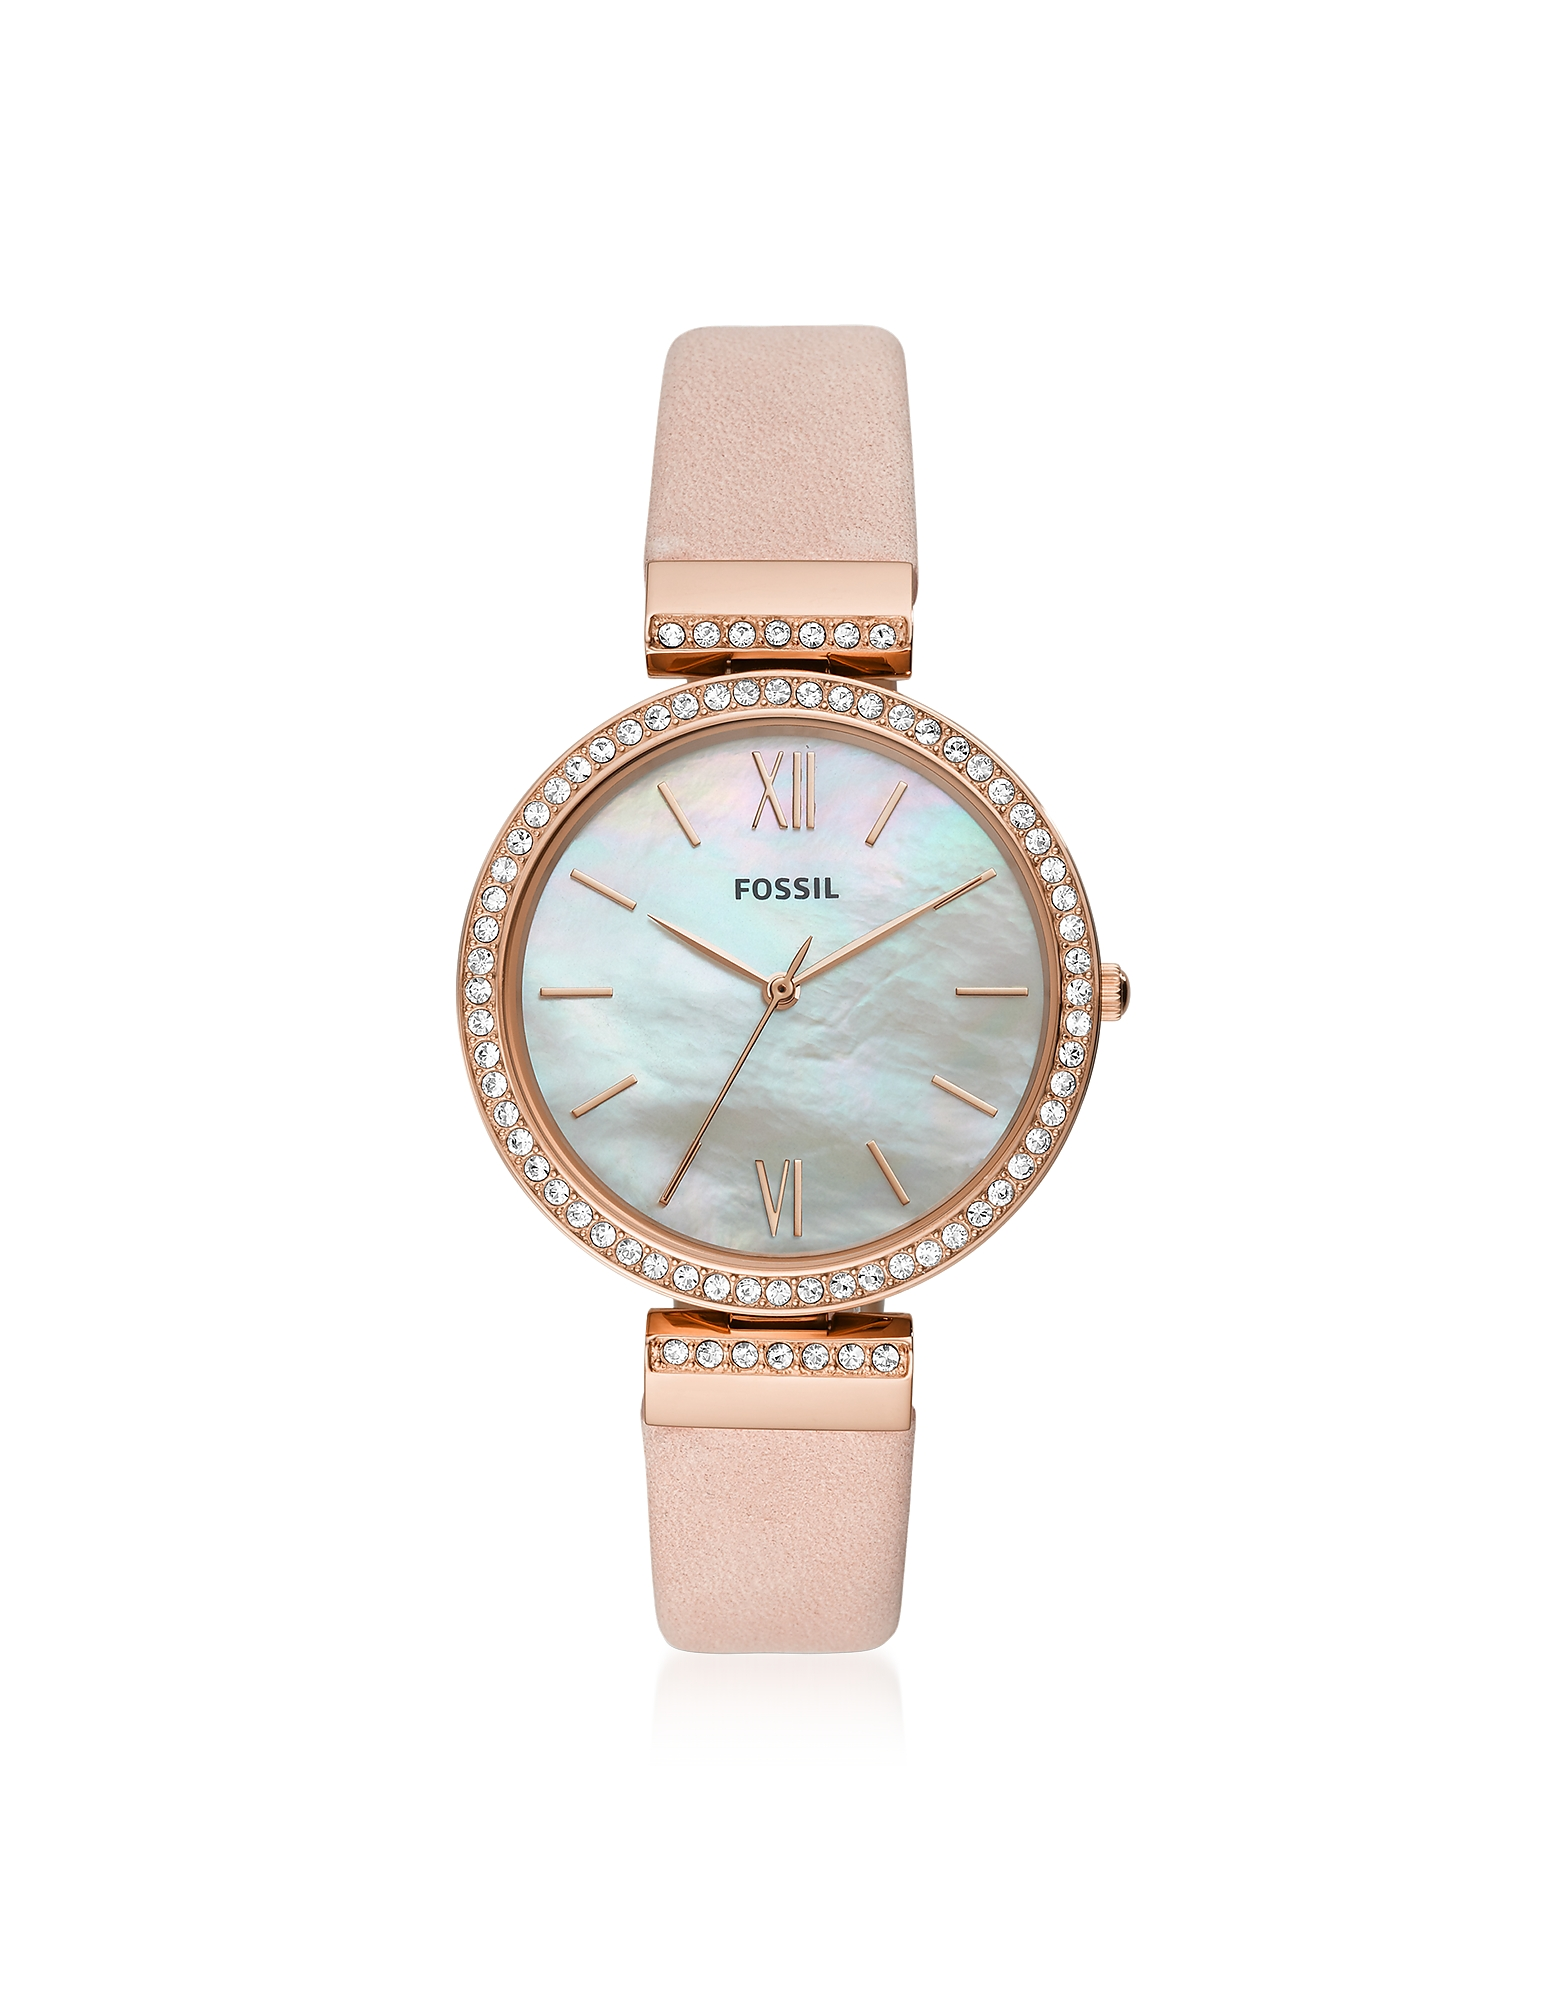 Madeline Pink Leather Women's Watch